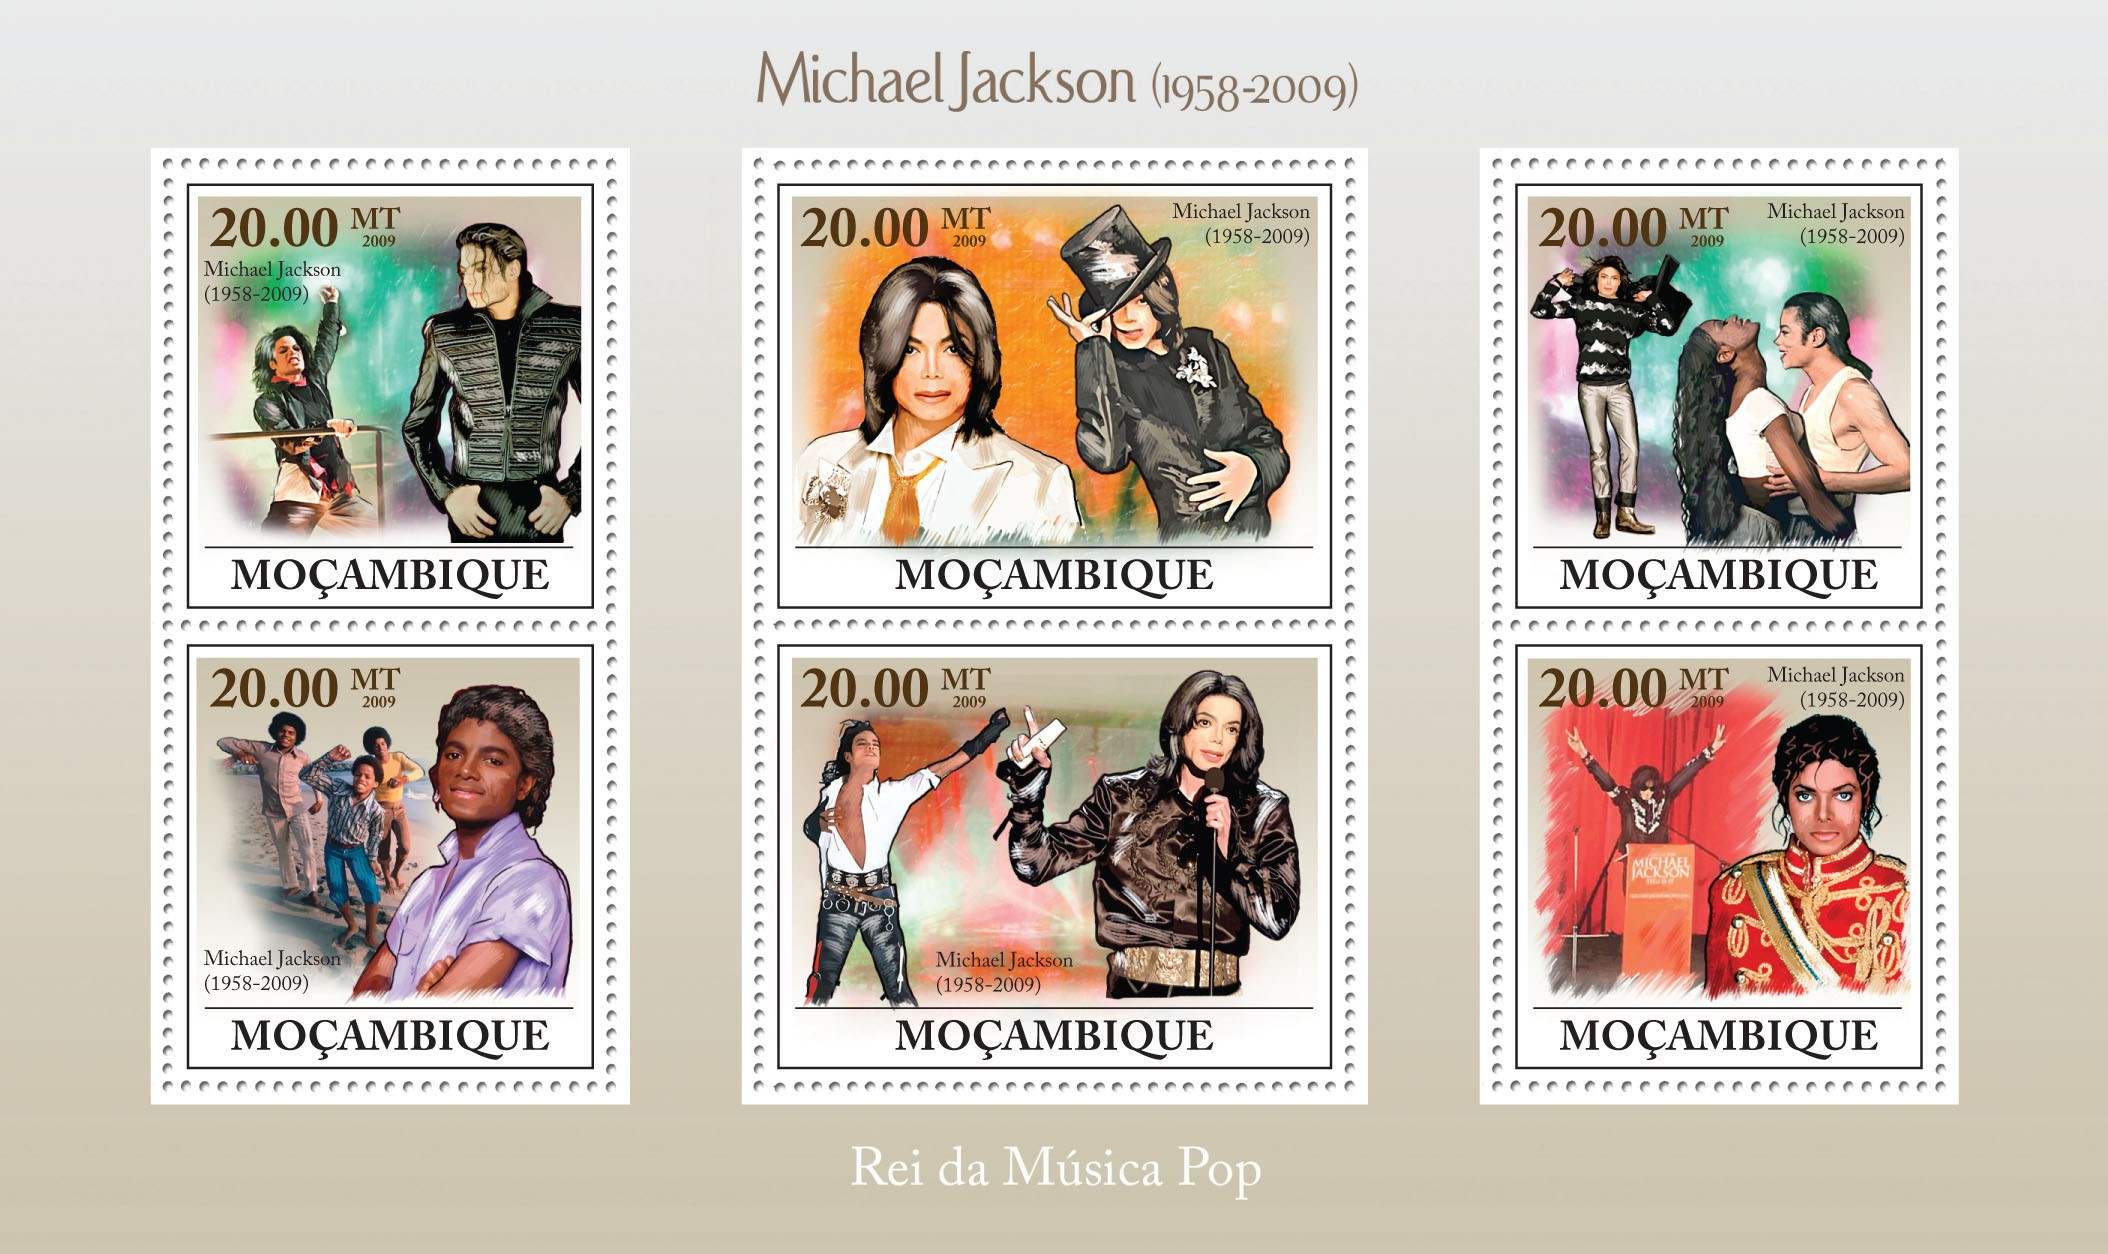 Michael Jackson (1958-2009) - Issue of Mozambique postage Stamps